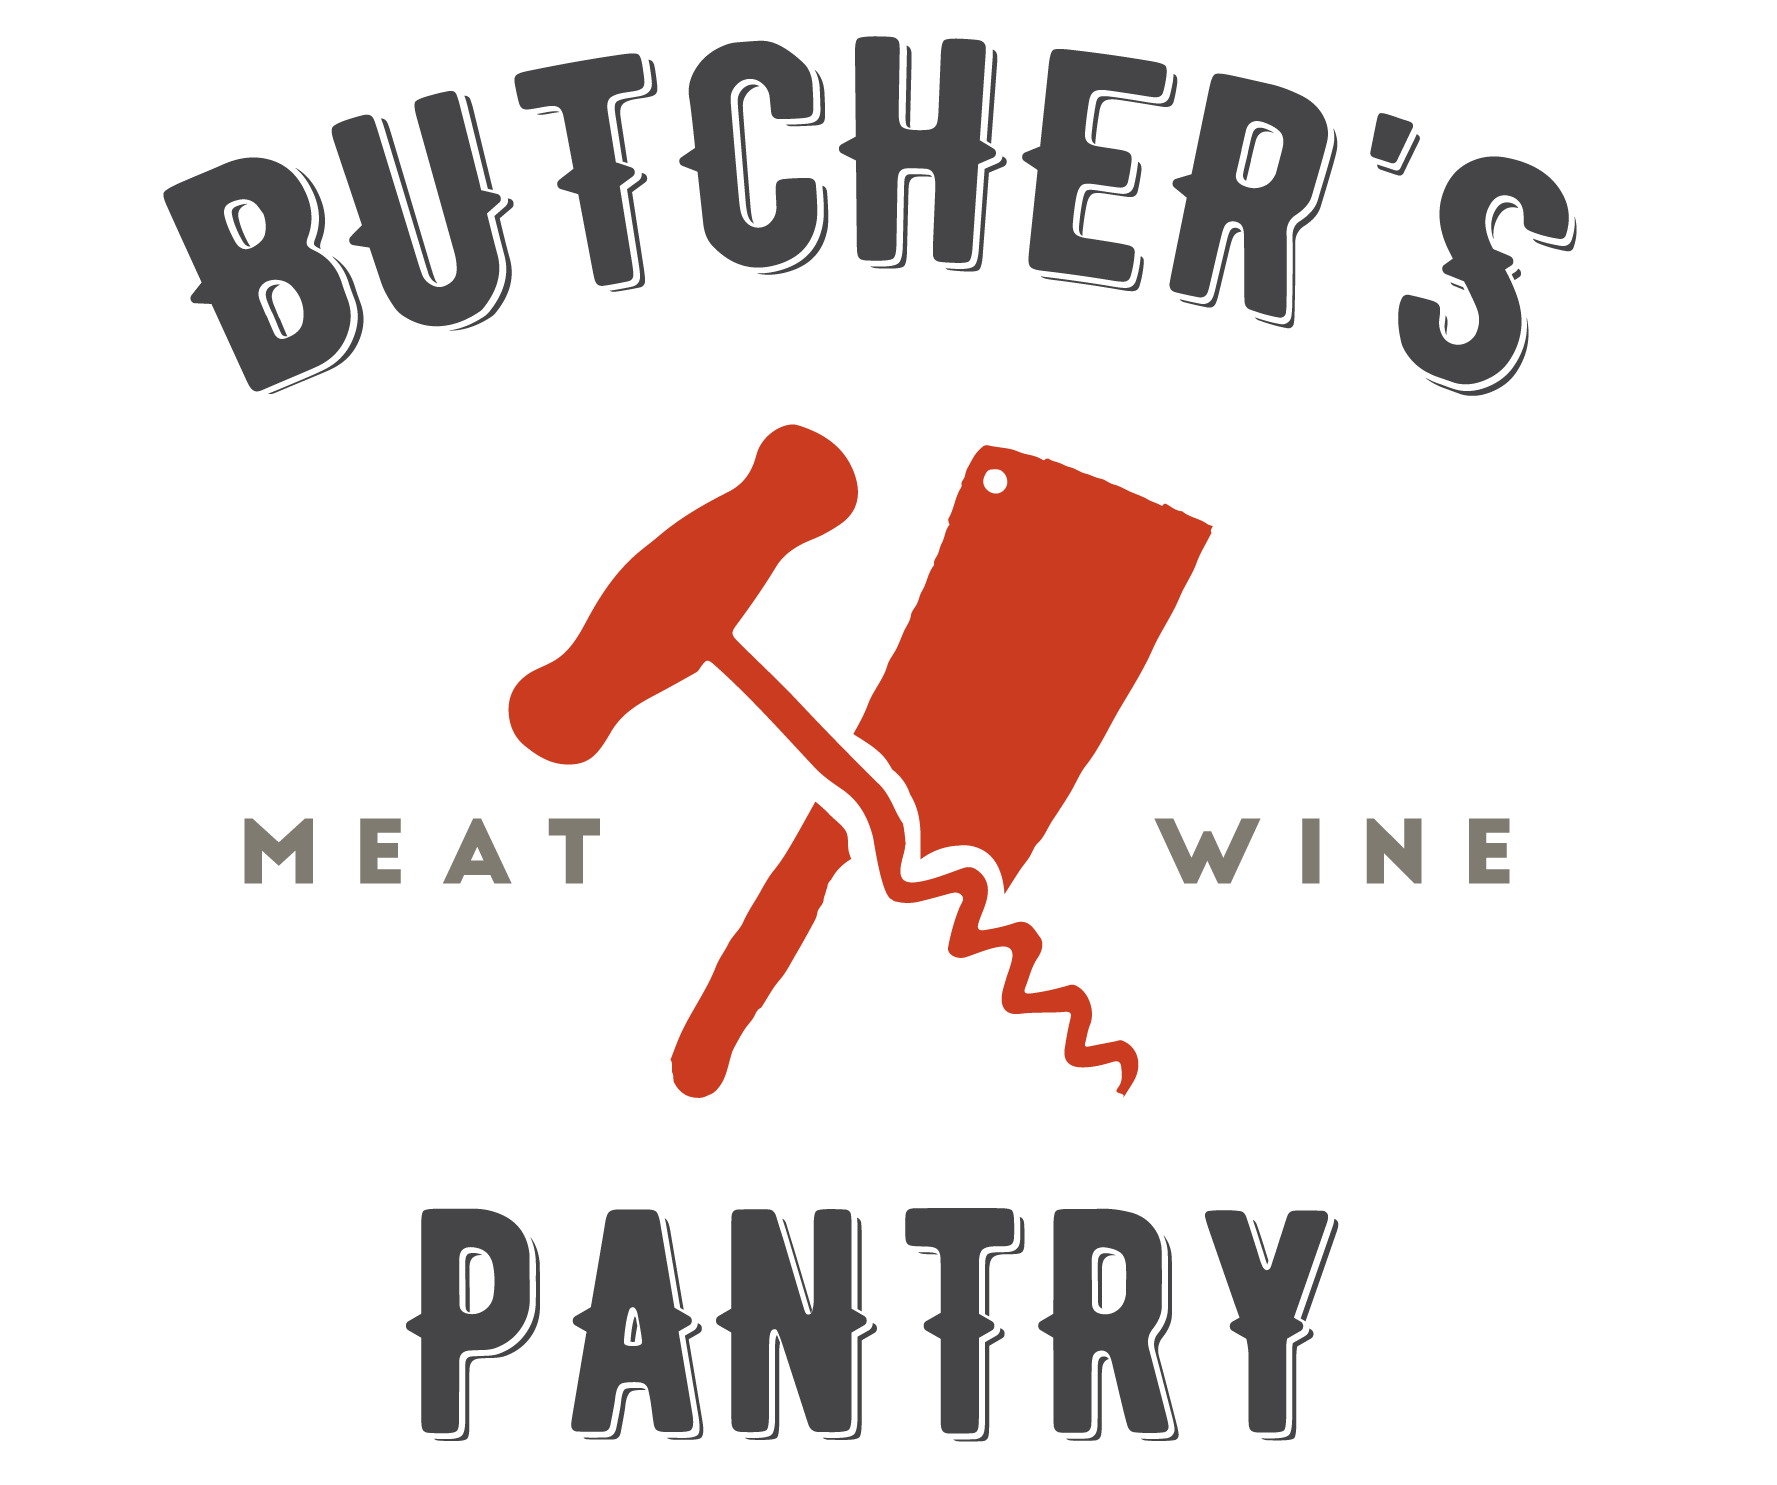 ButchersPantry_Logo_Final_Square-01.png